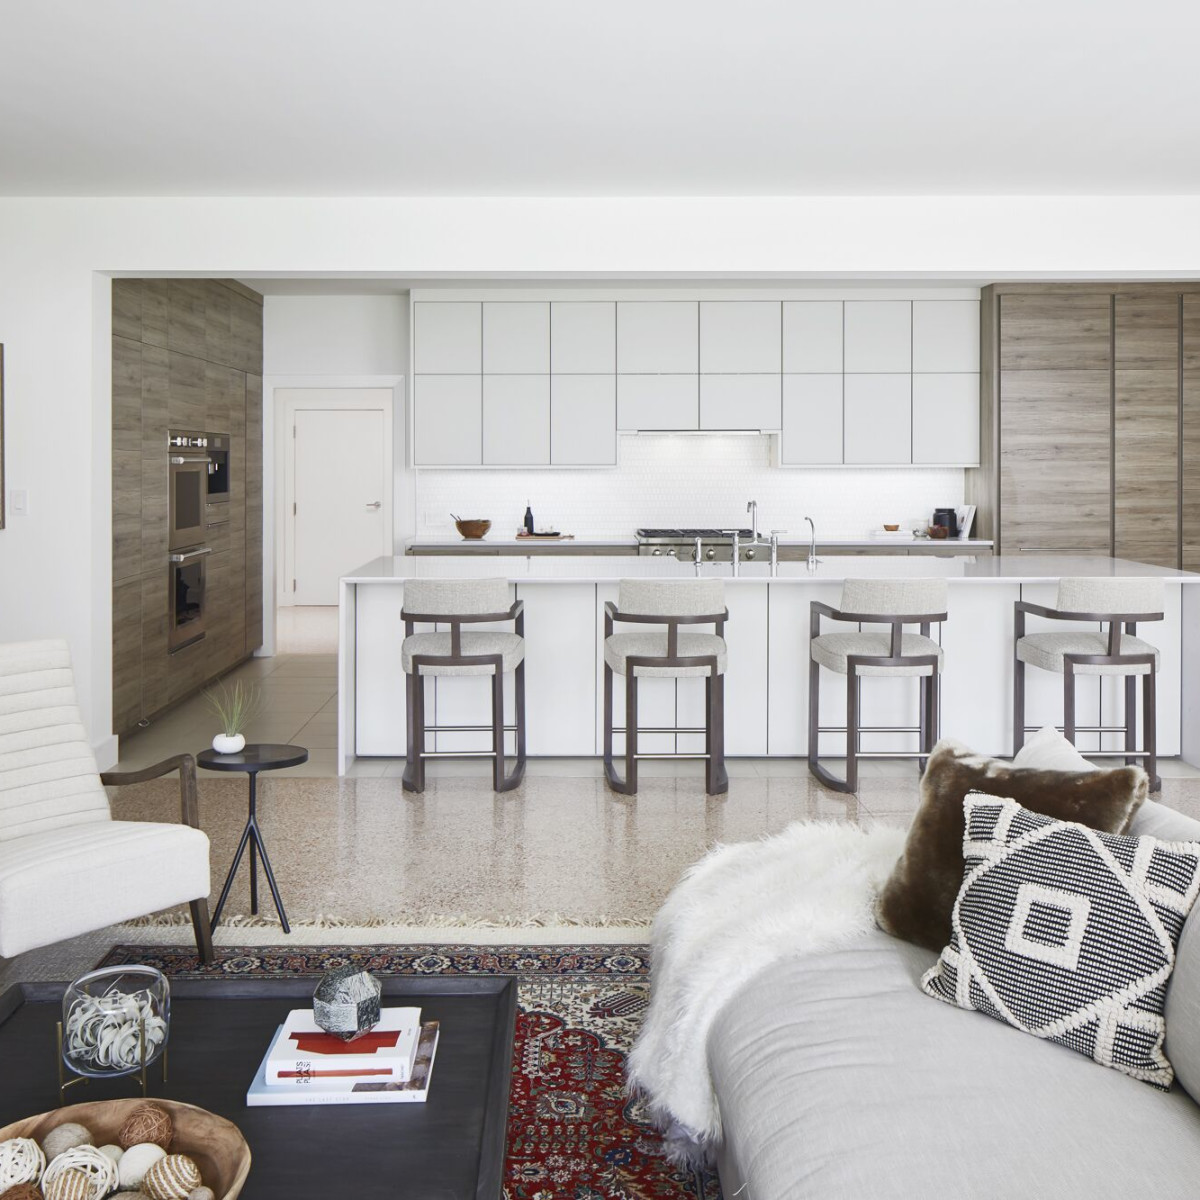 CG&S Concrete Remodel: Living room and kitchen